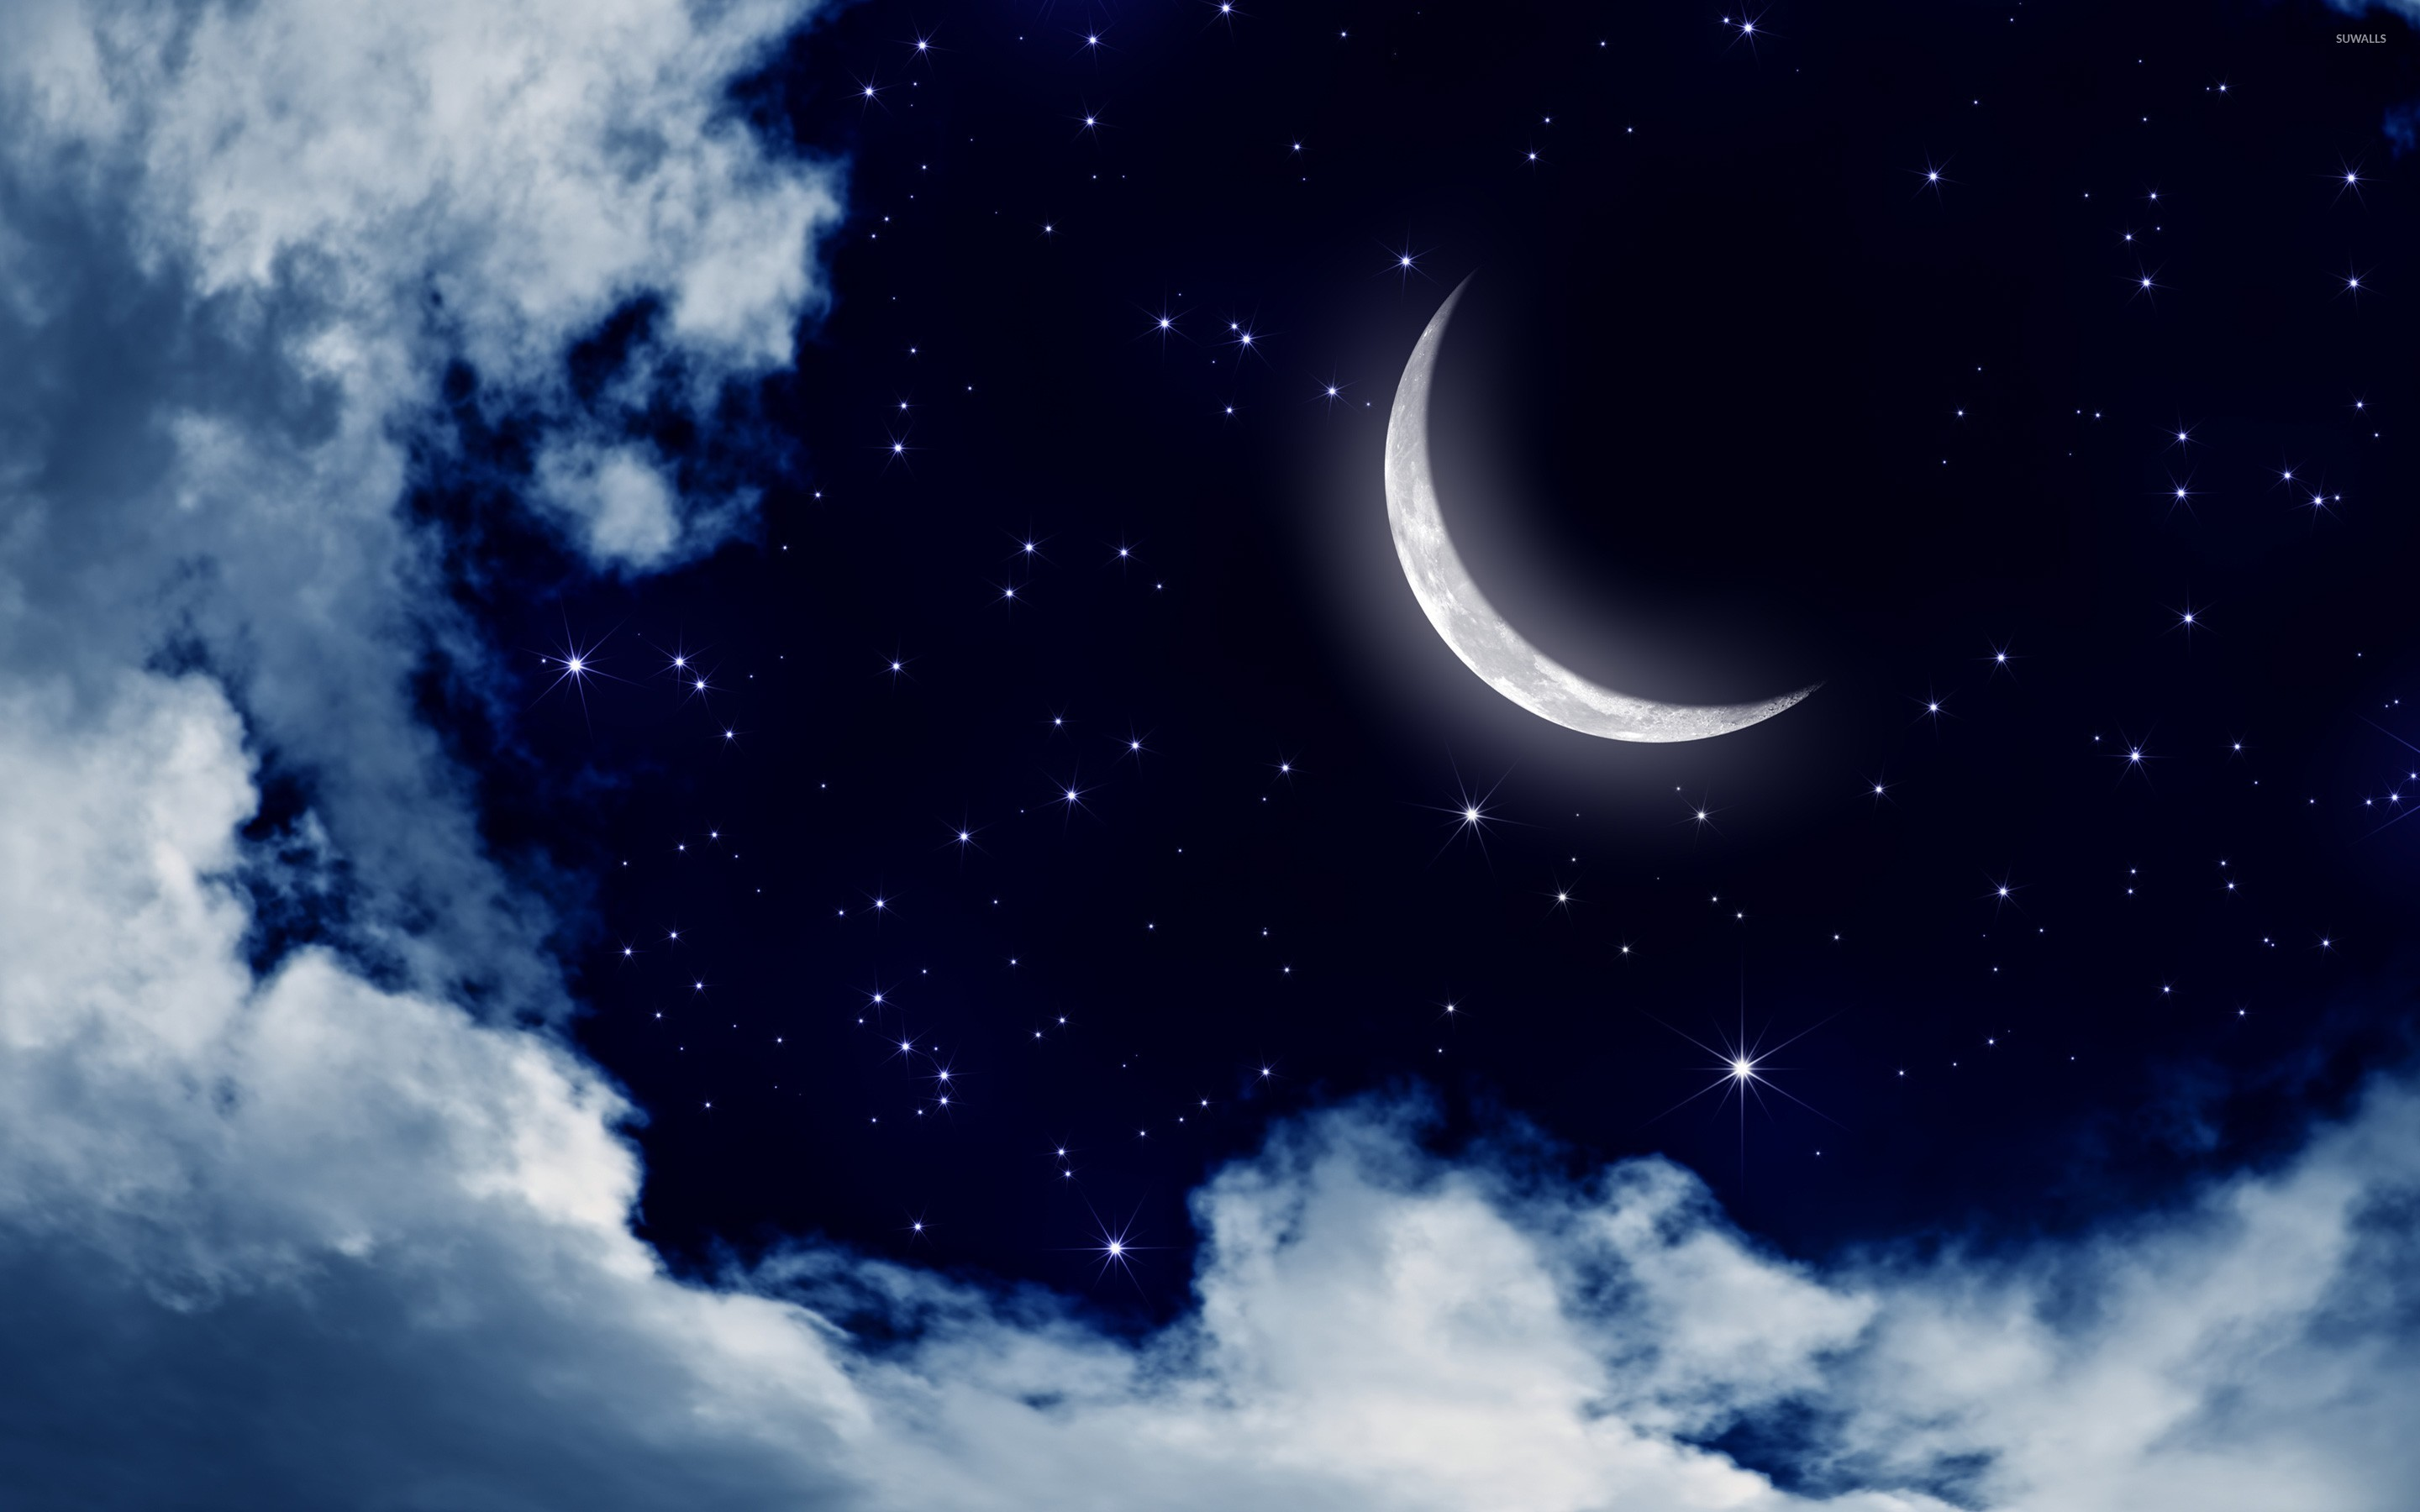 moon and stars in the sky wallpaper digital art wallpapers 25176